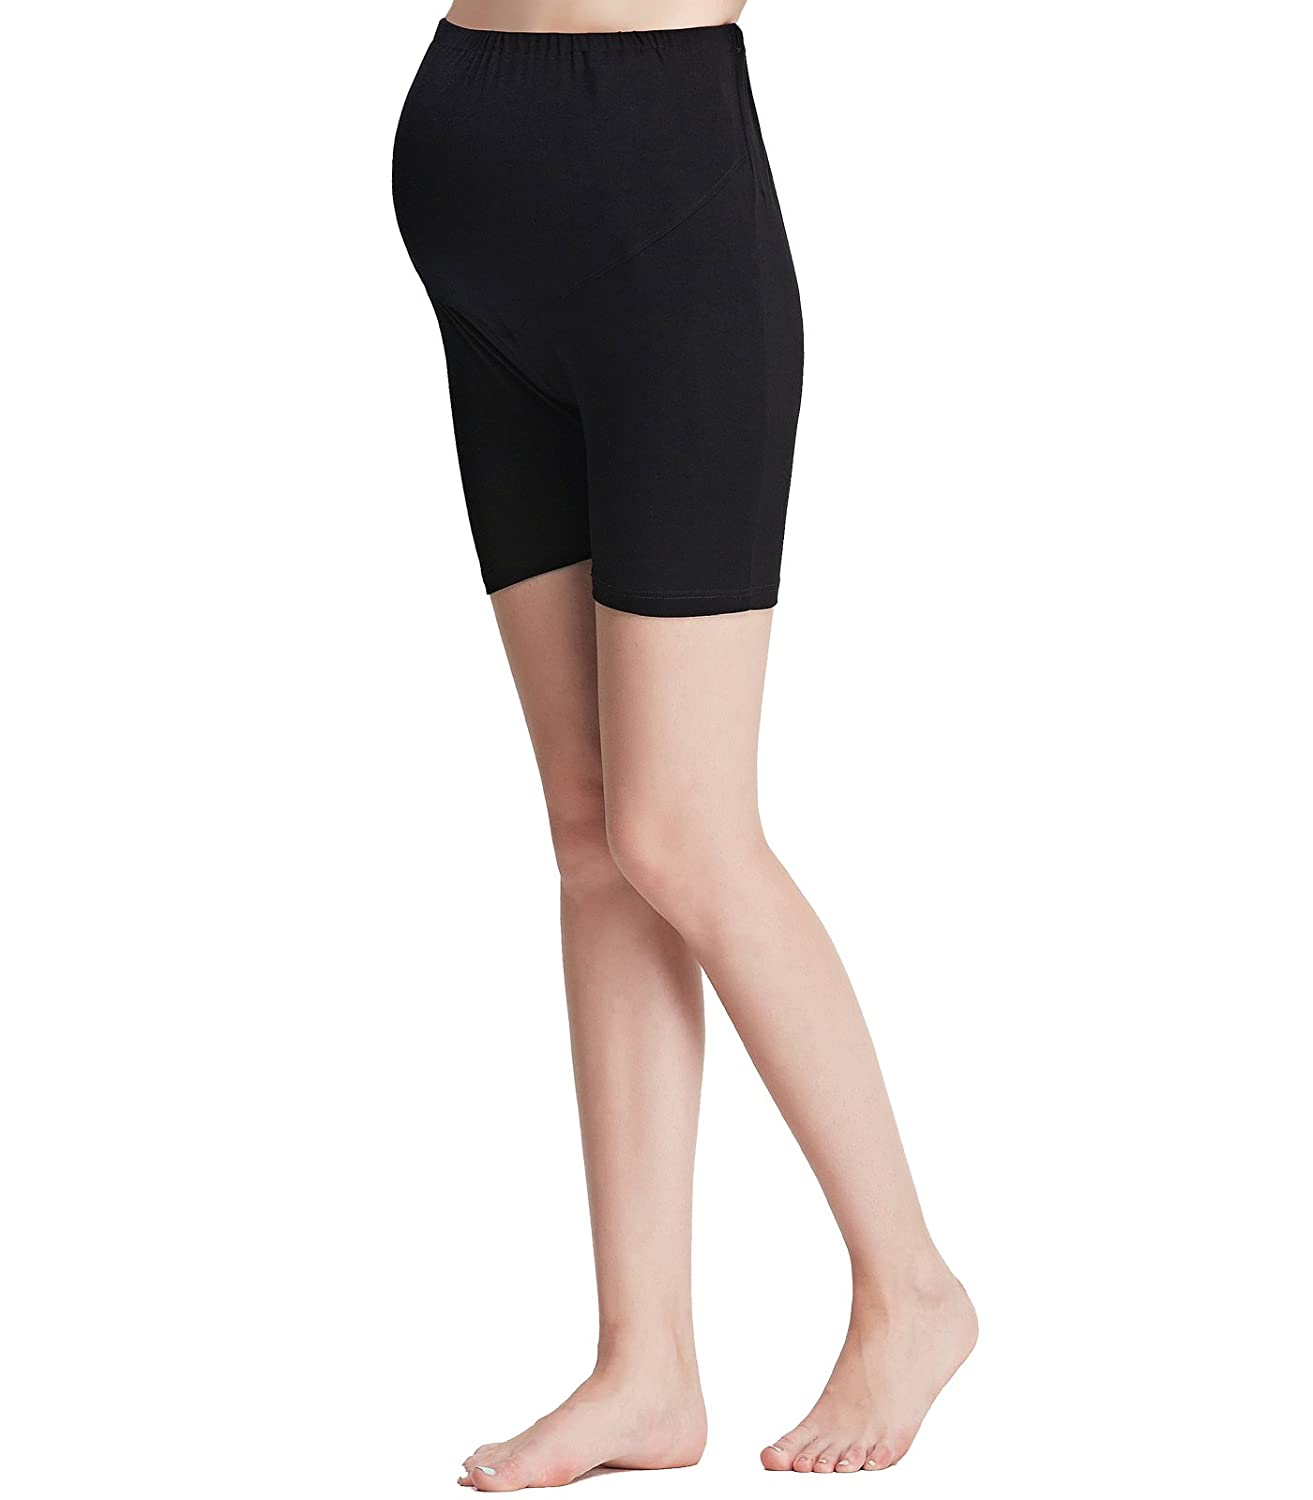 Liang Rou Maternity Belly Support Mini-Ribbed Stretch Safety Short Leggings Baifu International Limited ML8130-BK-M